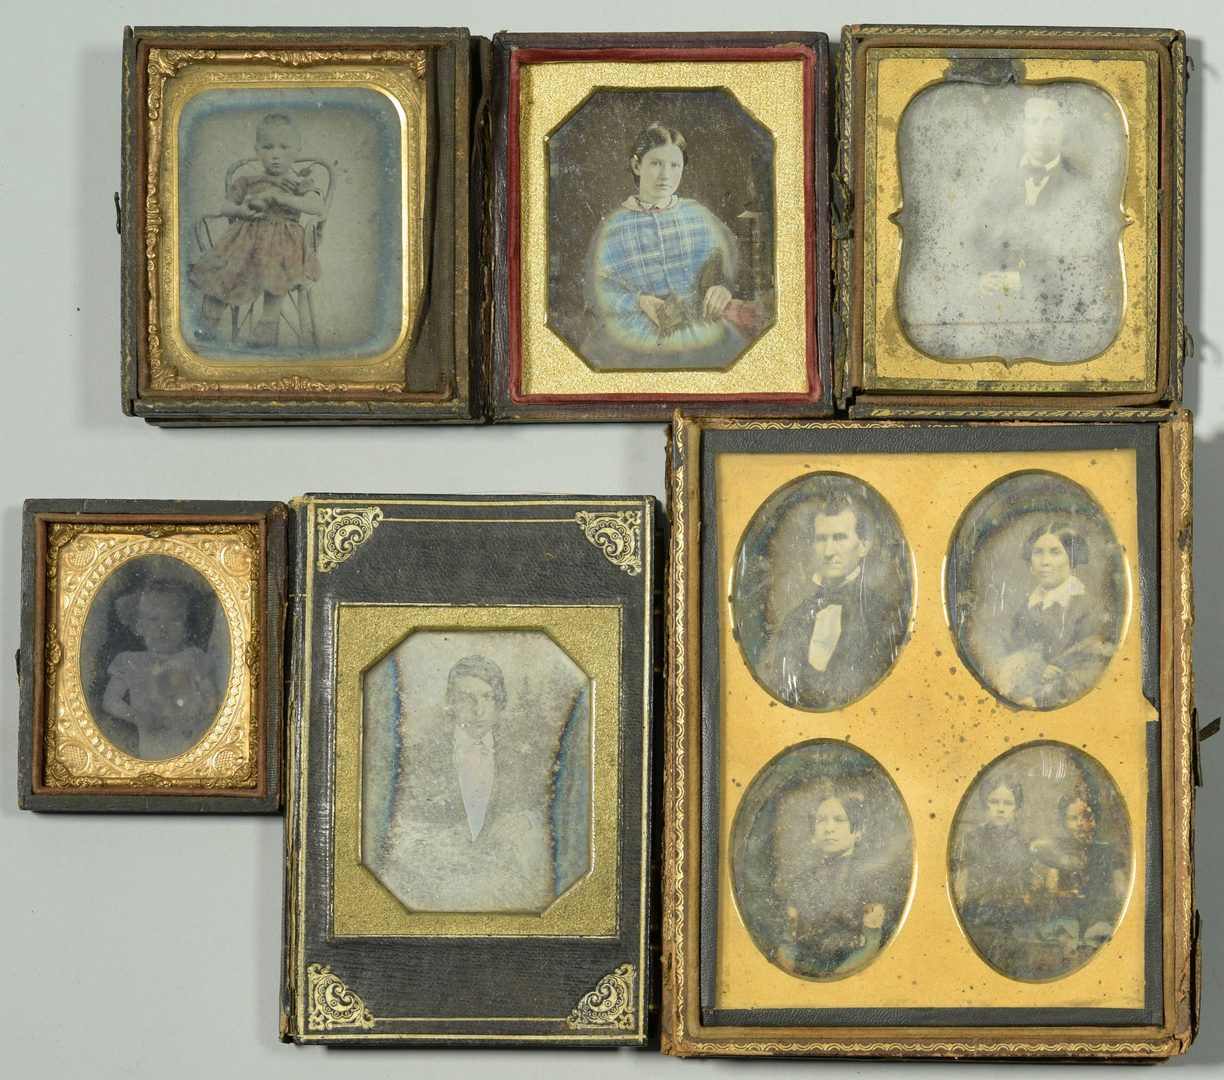 Lot 757: Archive of ambrotypes, tintypes, dags, silhouettes and miniature portraits